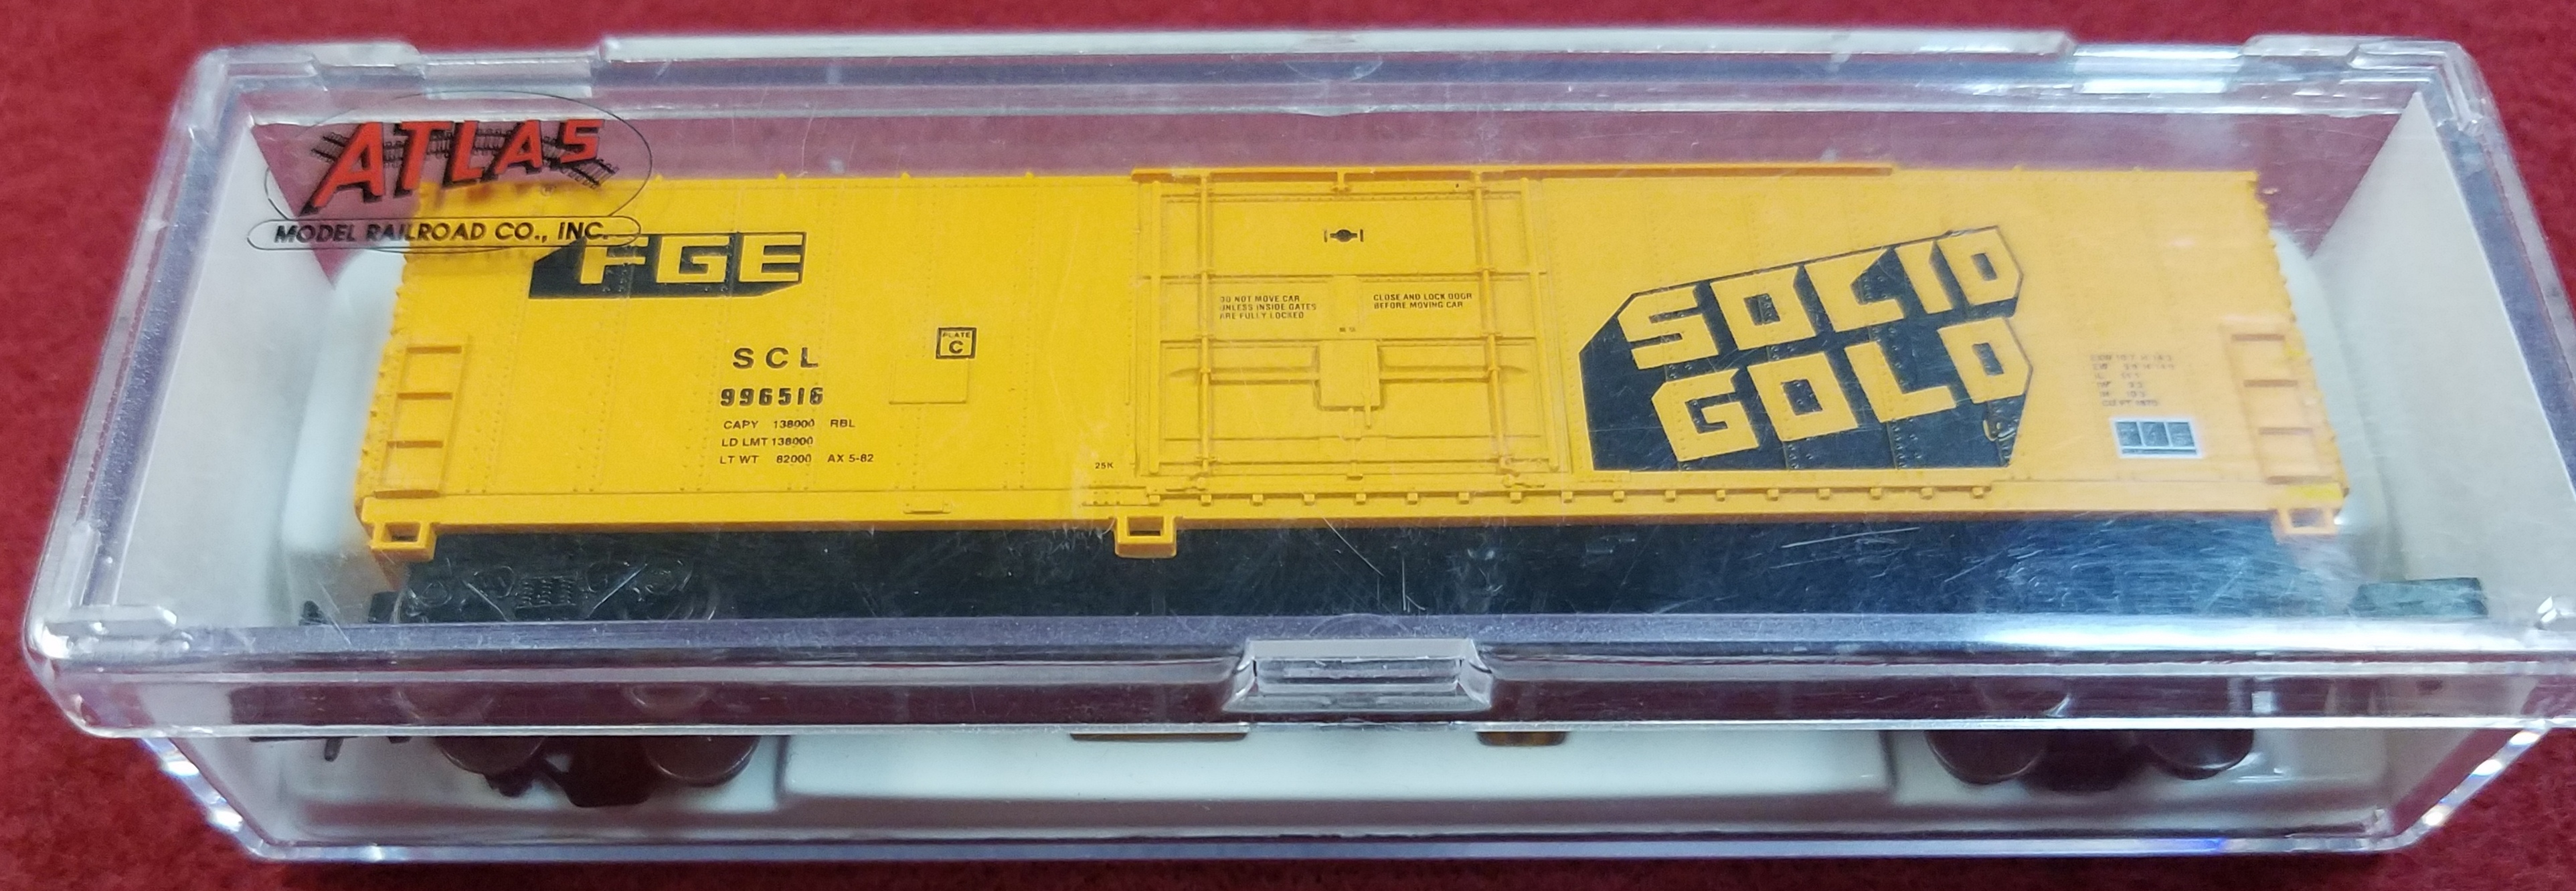 ATLAS - N SCALE - FGE SCL 996516 - 5840C 50' FGE BOX CAR SOLID GOLD